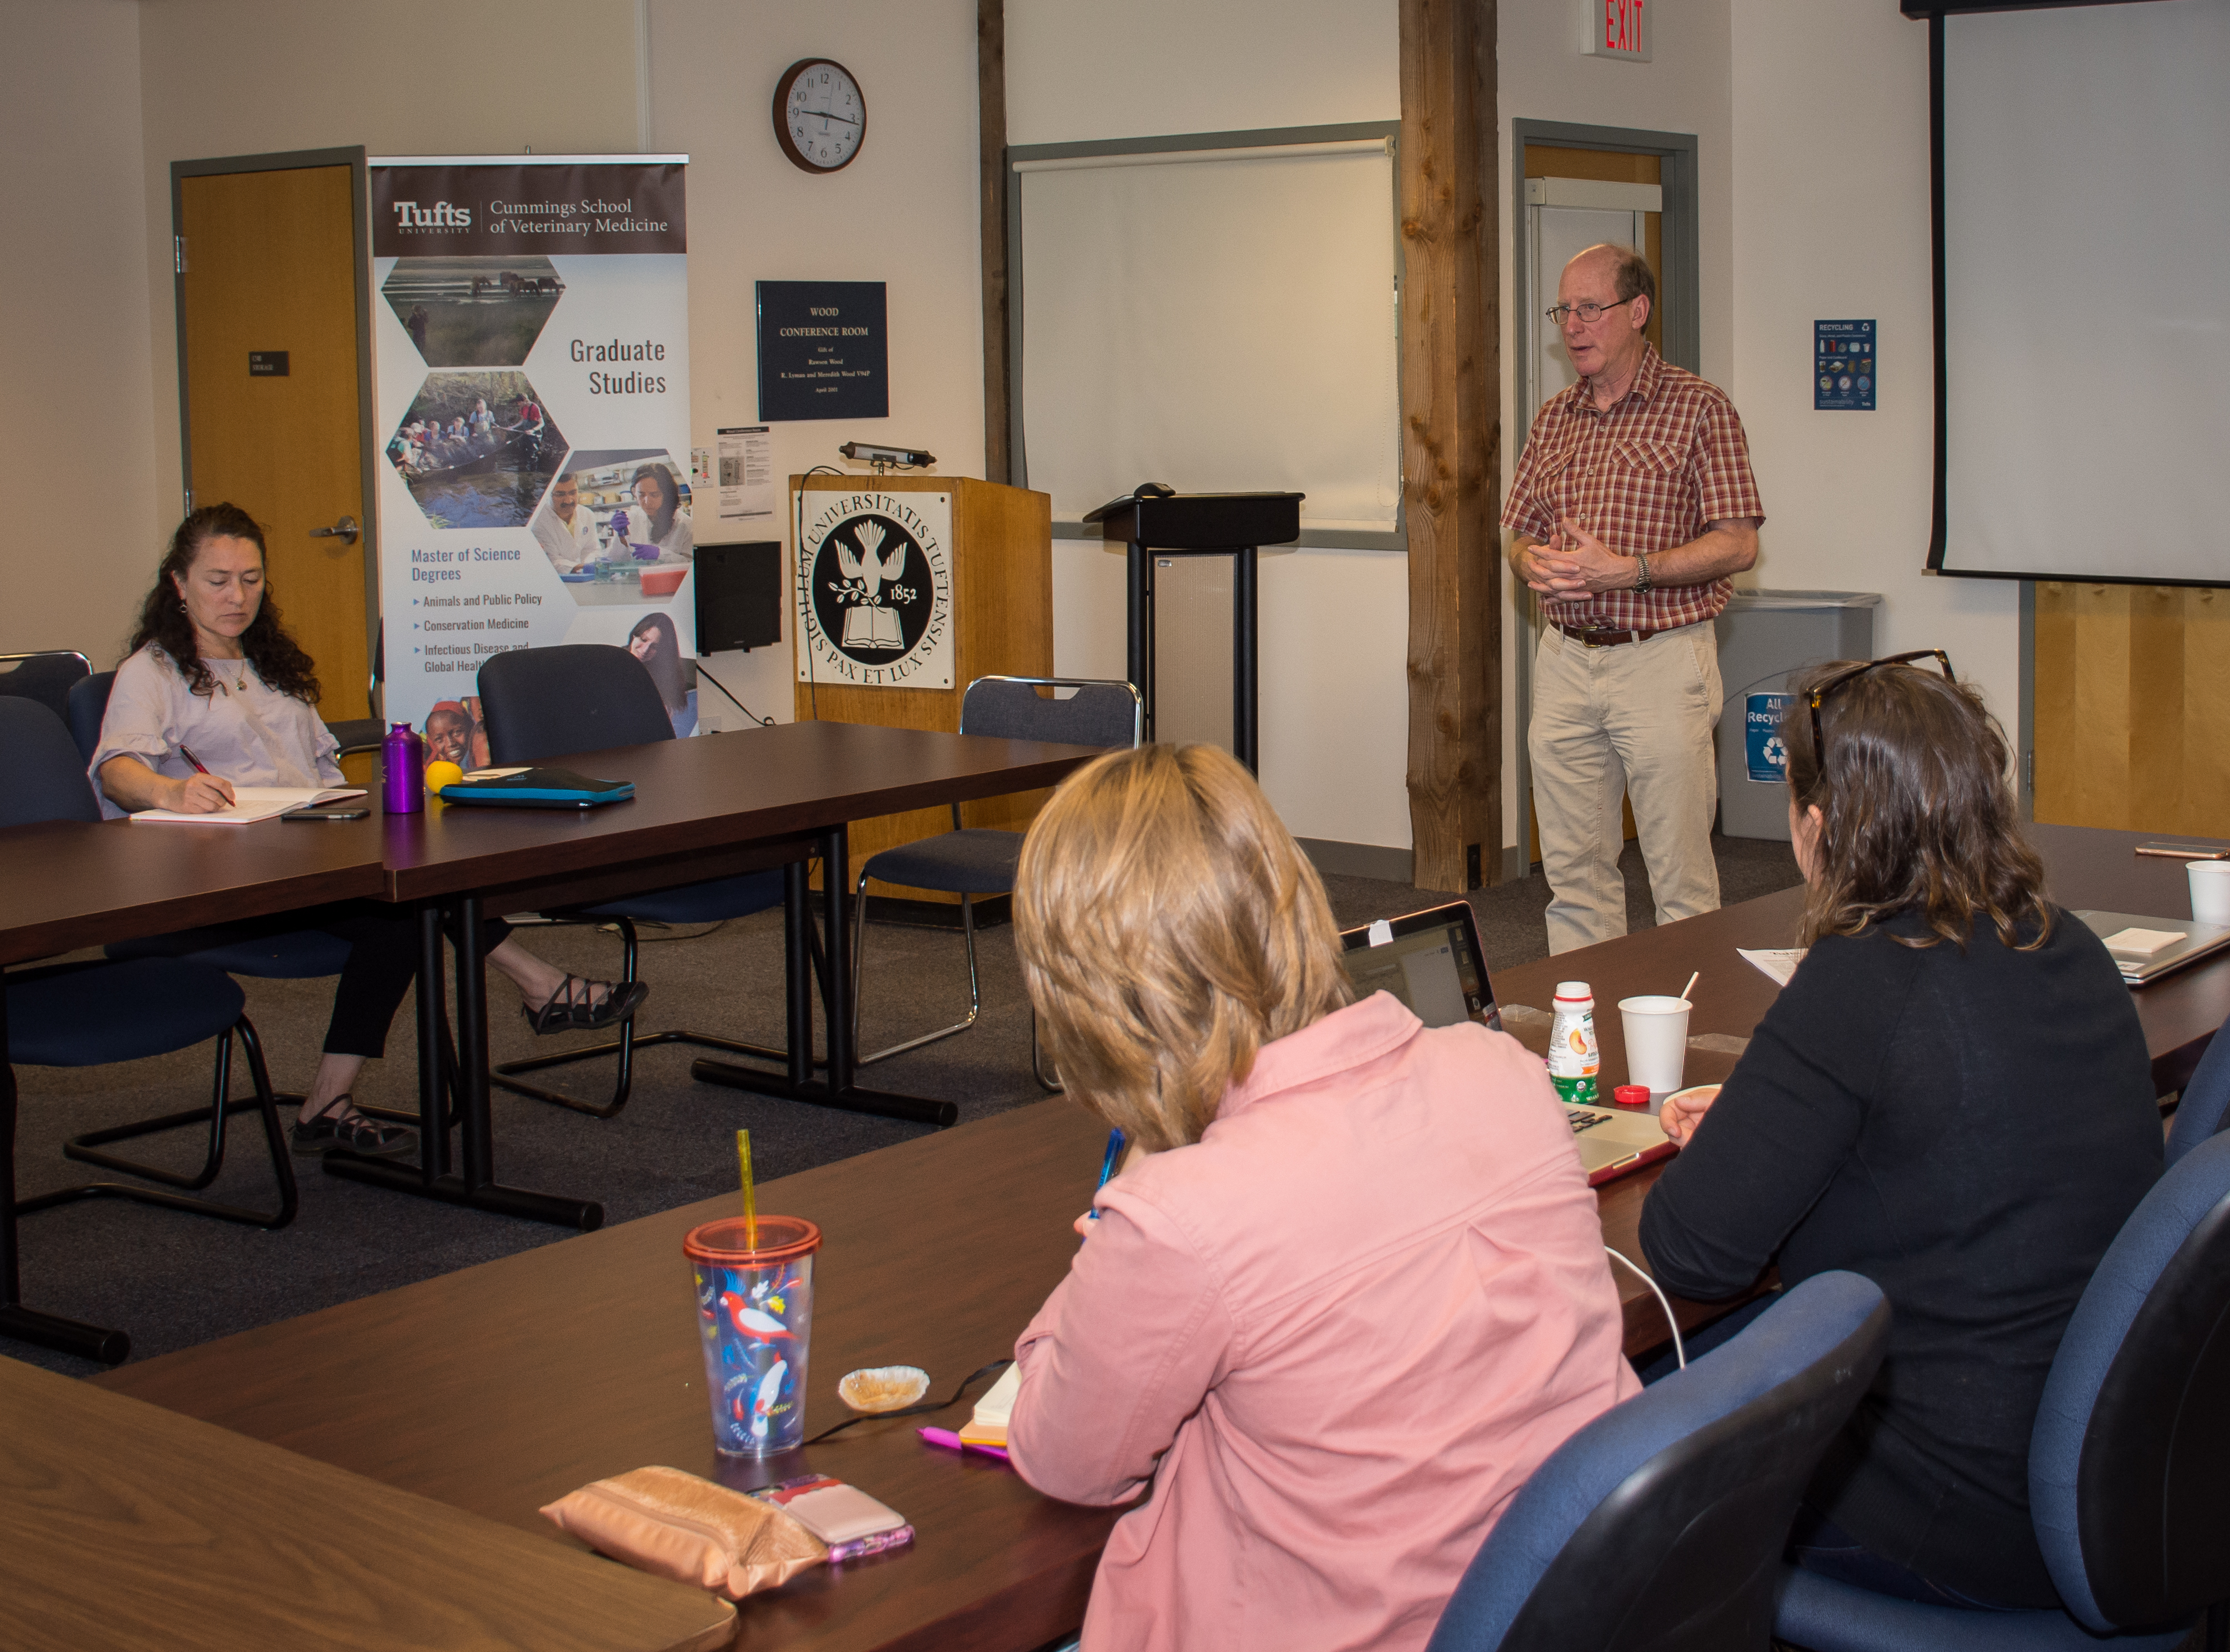 Summer Short Course: Animals and Society 2018 - Dr. Allen Rutberg talked about his deer and horse immunocontraception research.